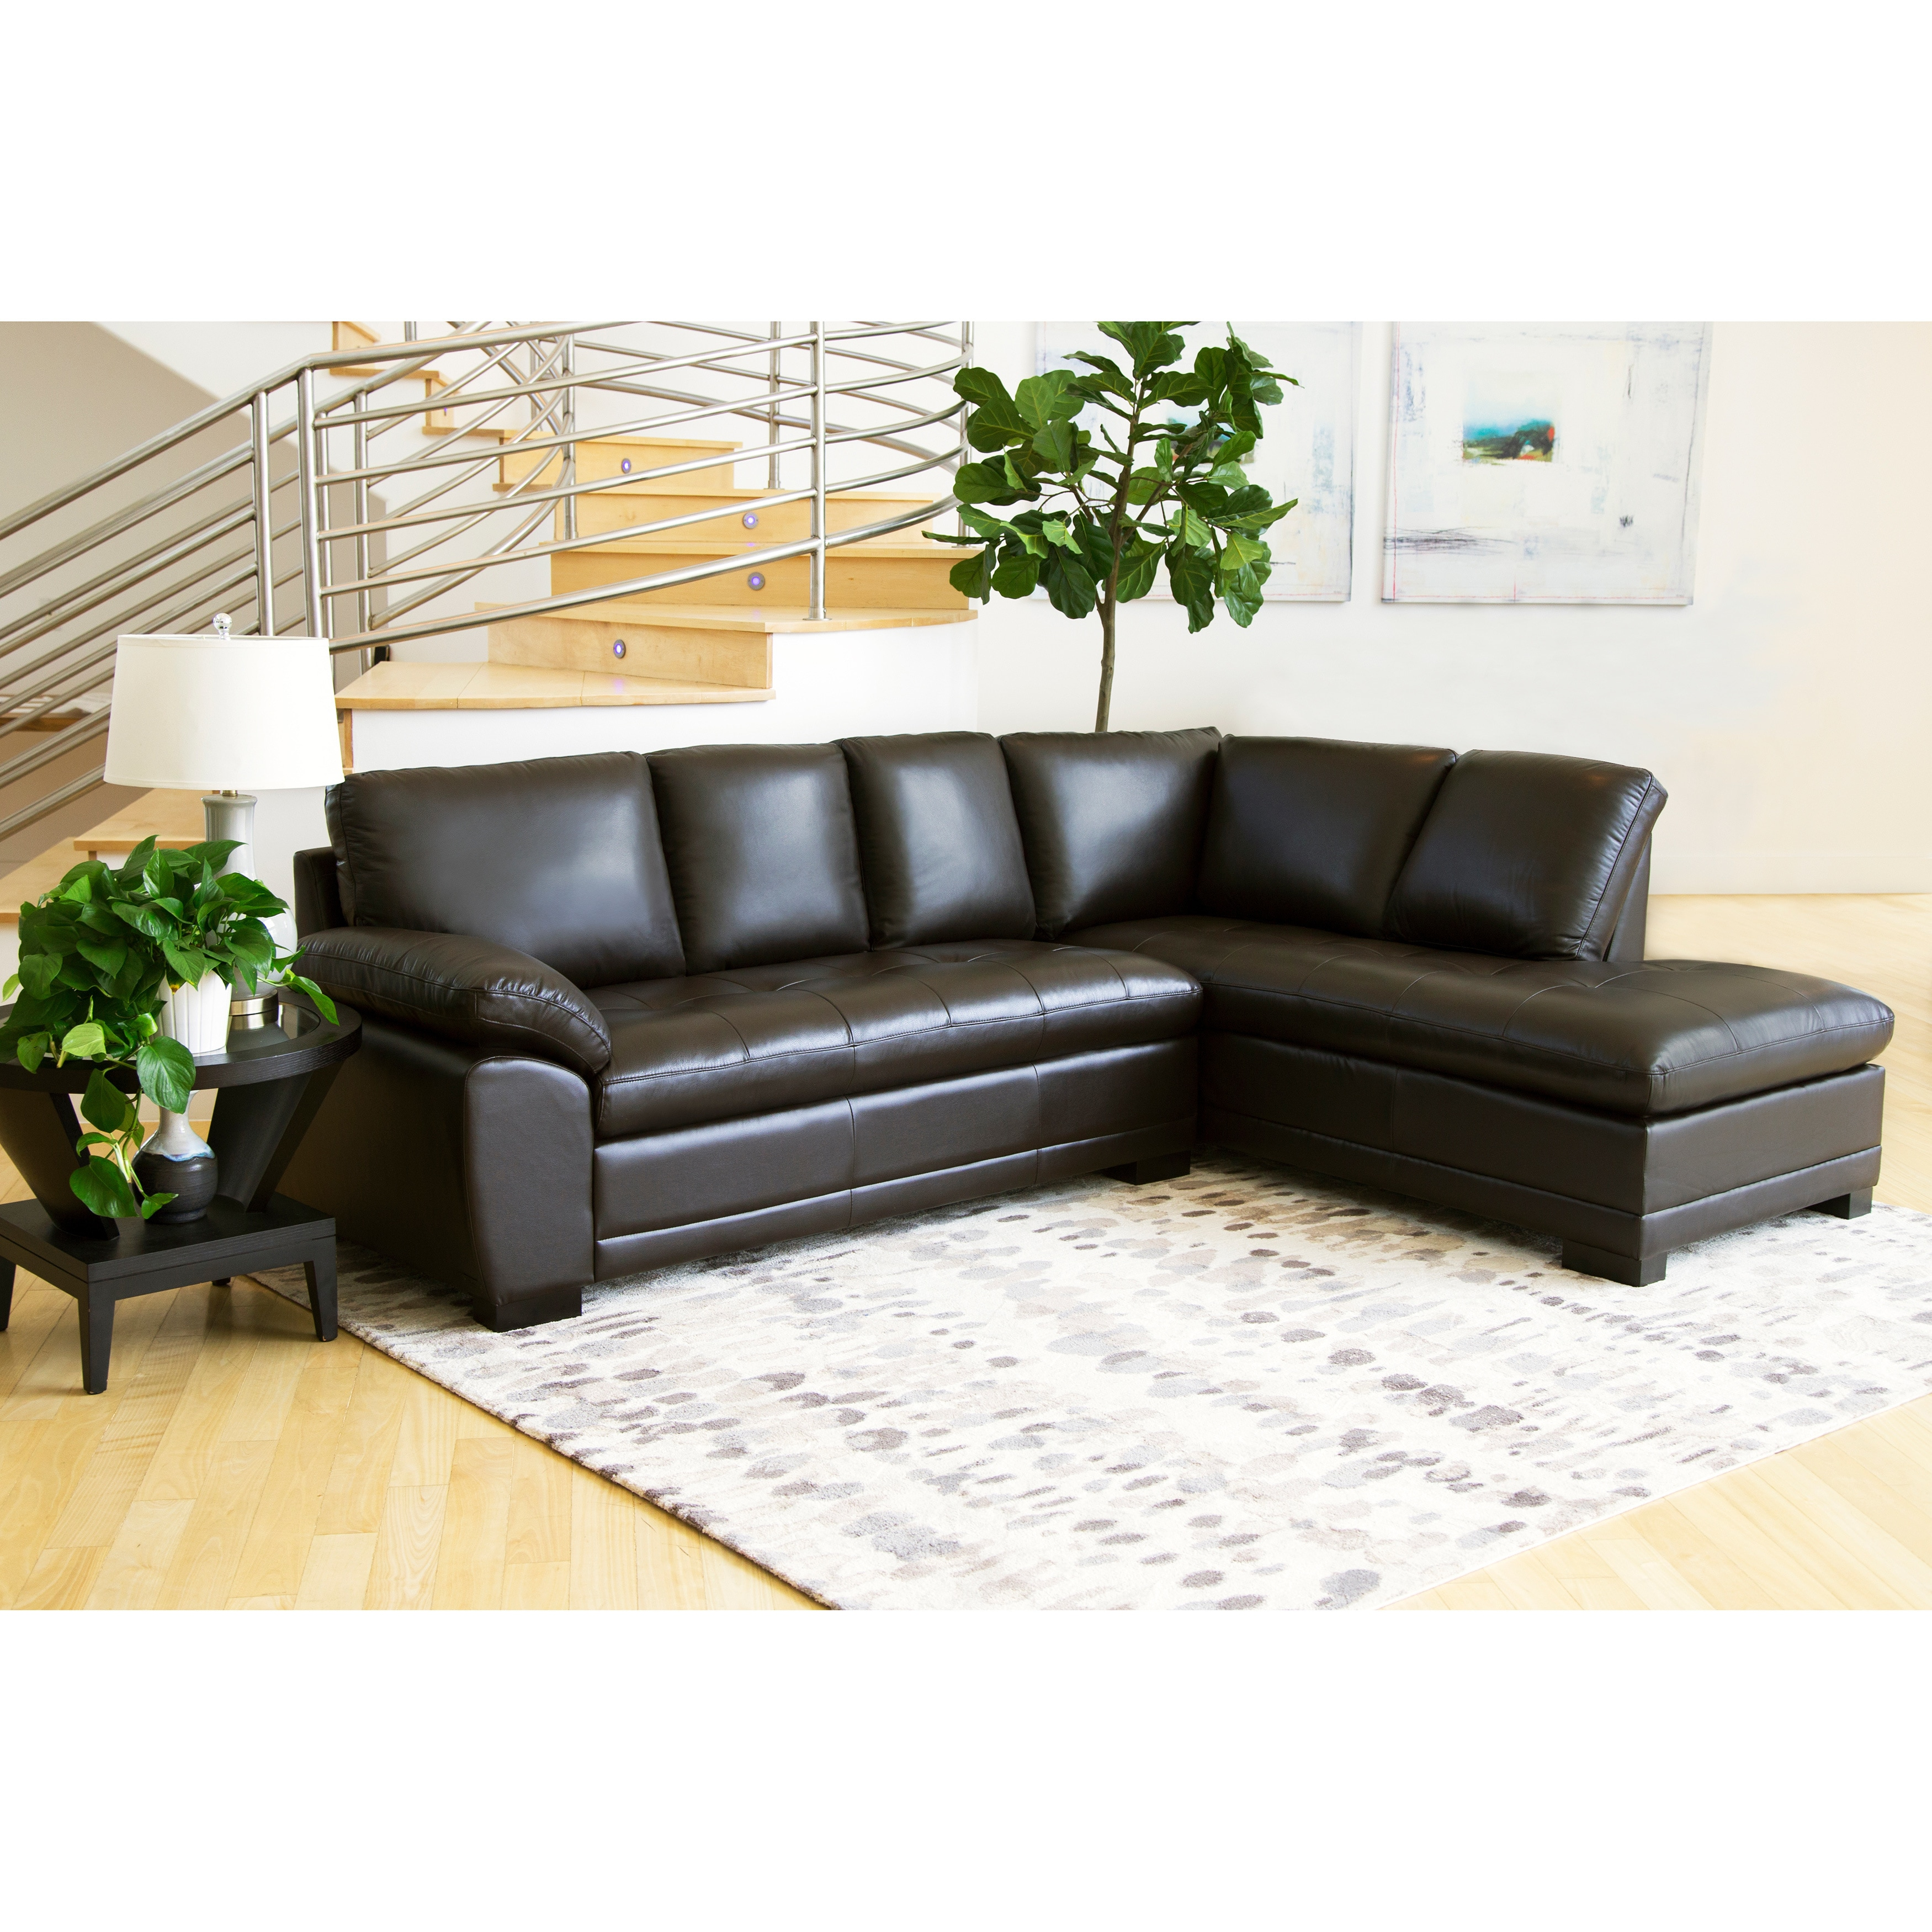 Exceptionnel Abbyson Devonshire Leather Tufted Sectional